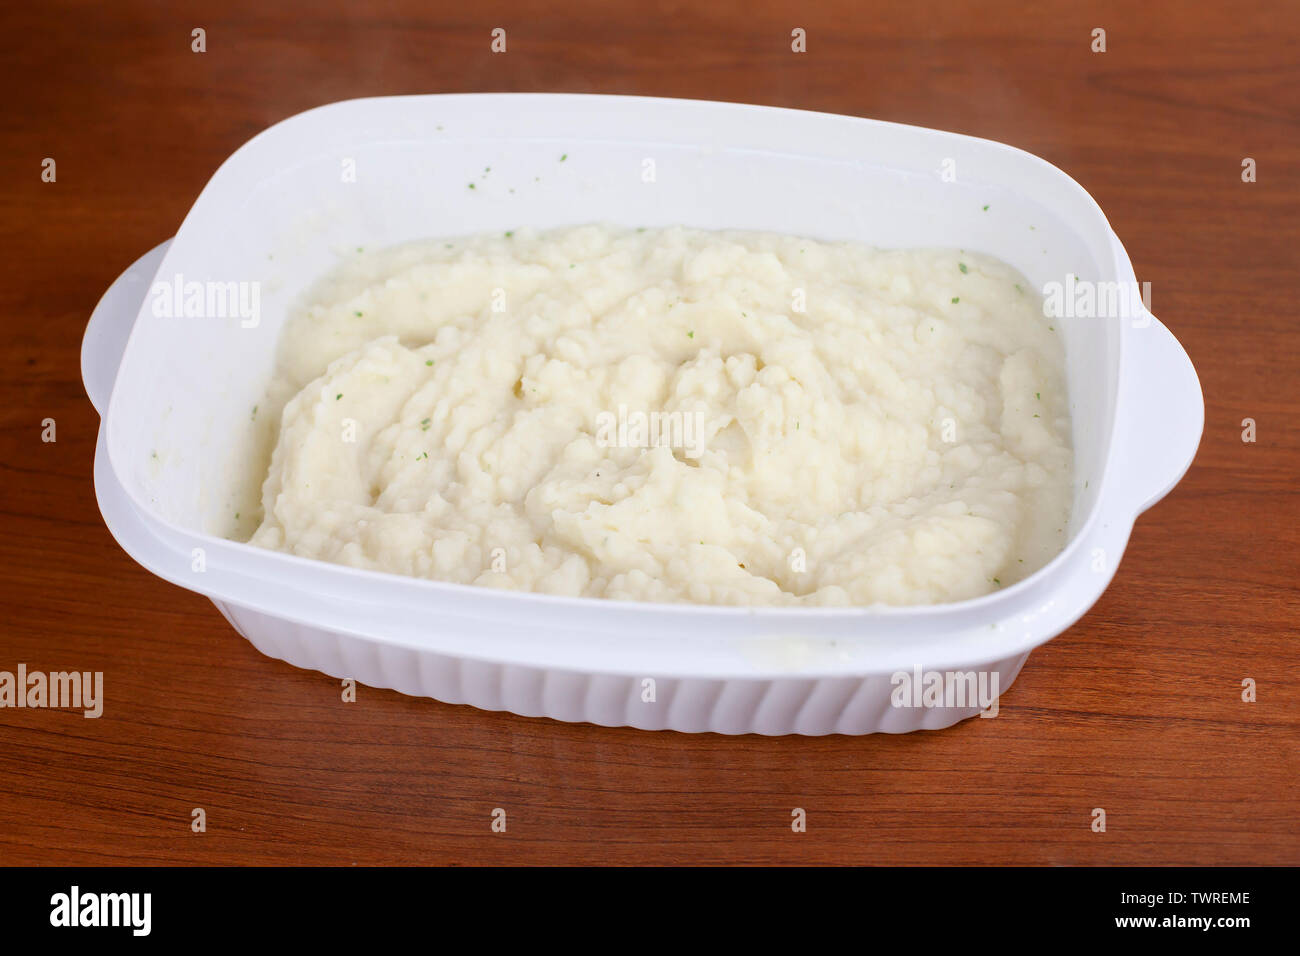 Large dish of creamy mashed potatoes prepared with chives - Stock Image